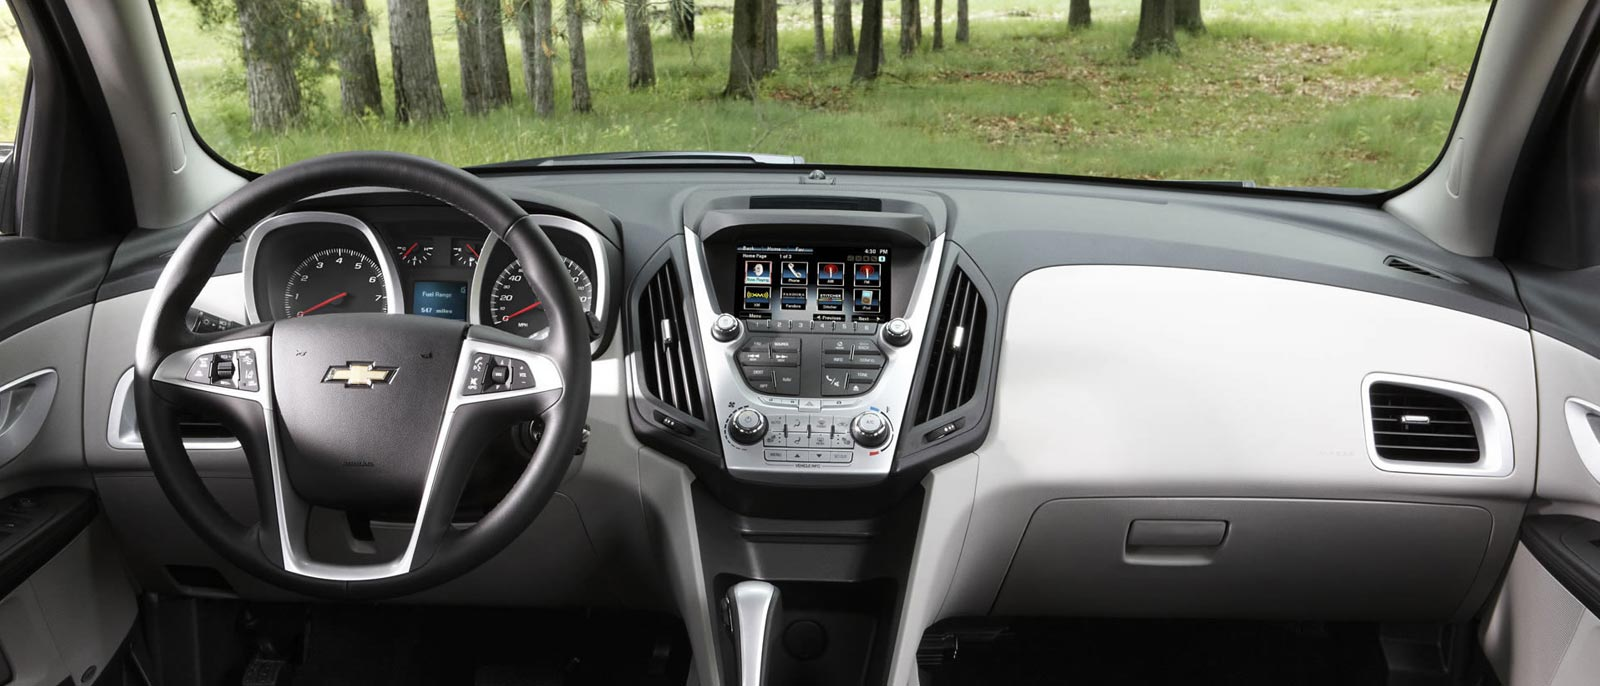 Chevy Equinox Interior Pictures